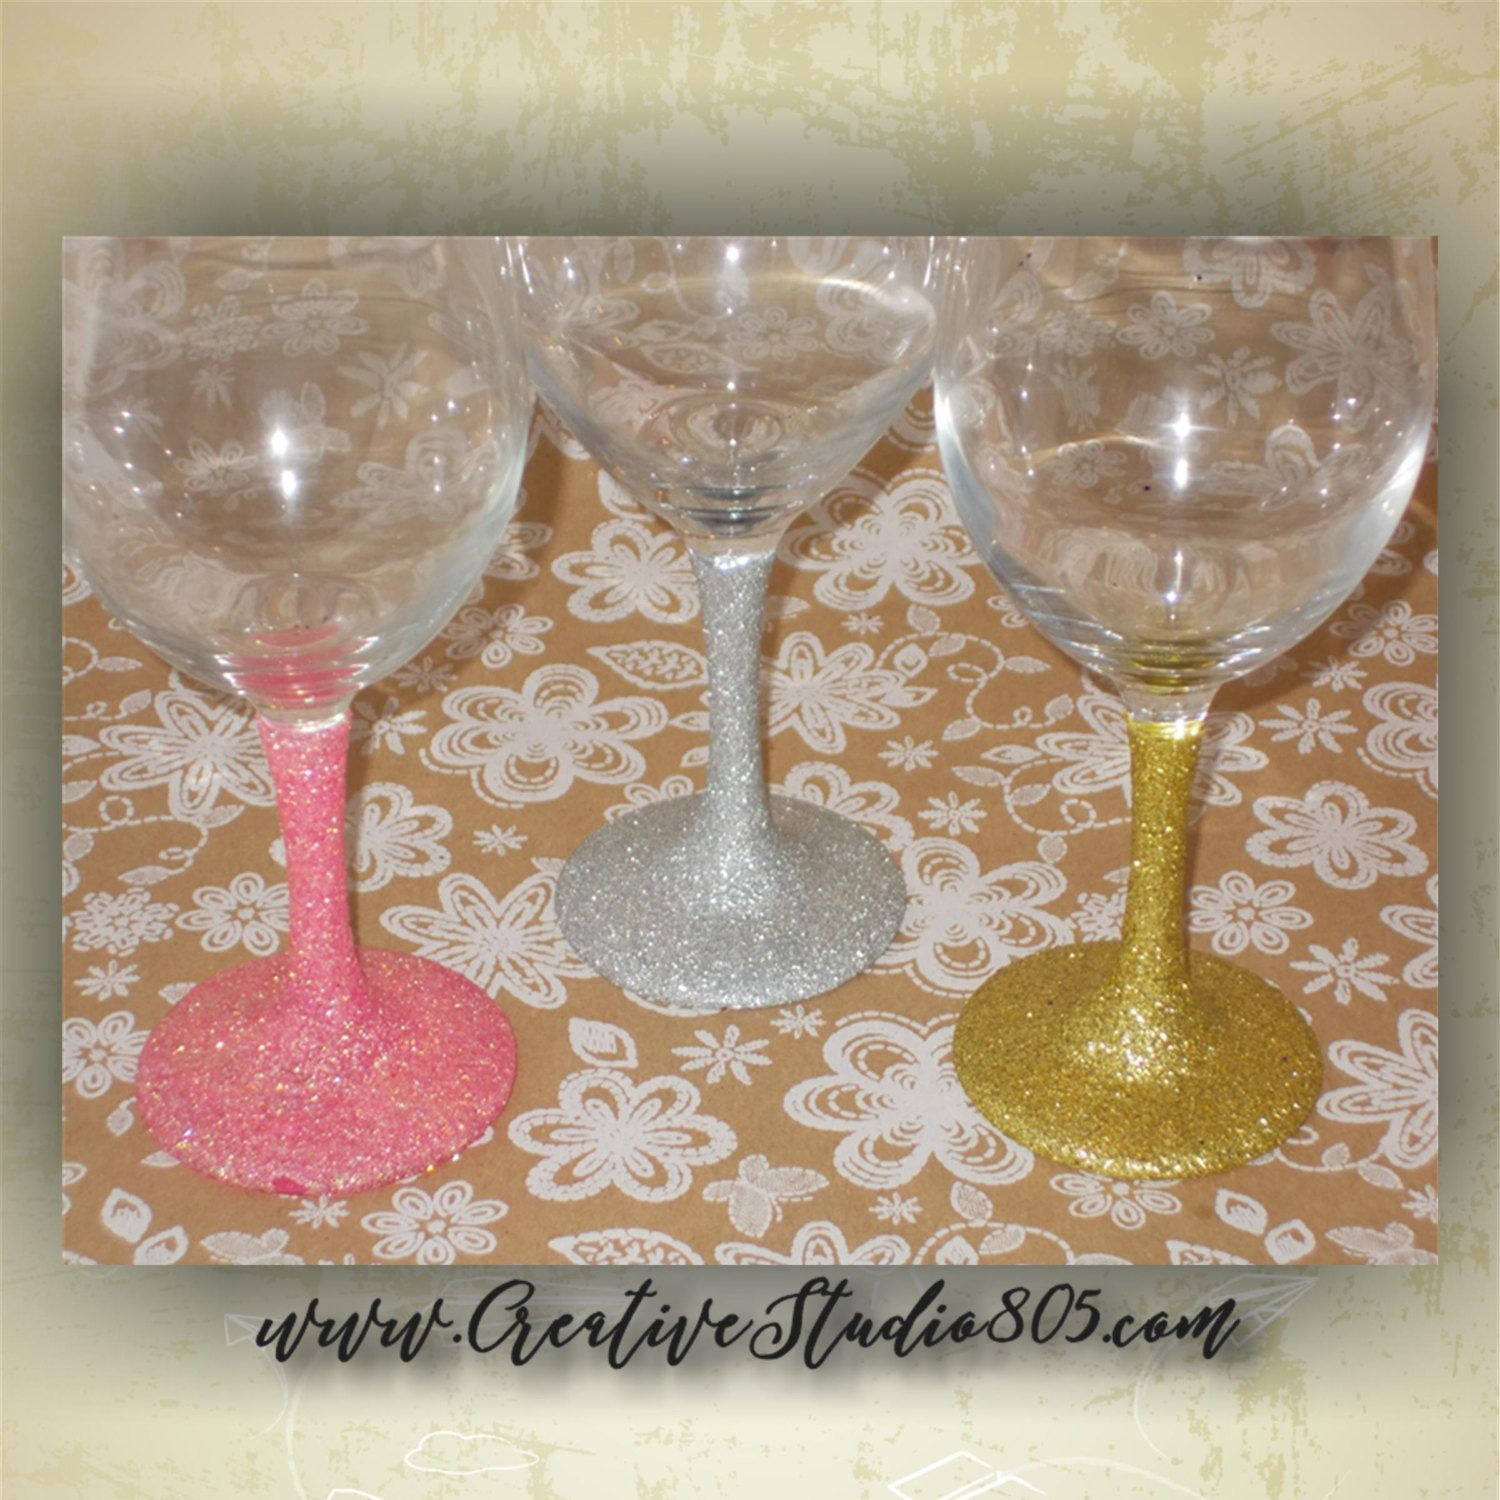 How to decorate wine glasses for bridesmaids - Glitter Only Decorated Glasses Birthday Glasses Custom Glassware Bridesmaids Glasses Glitter